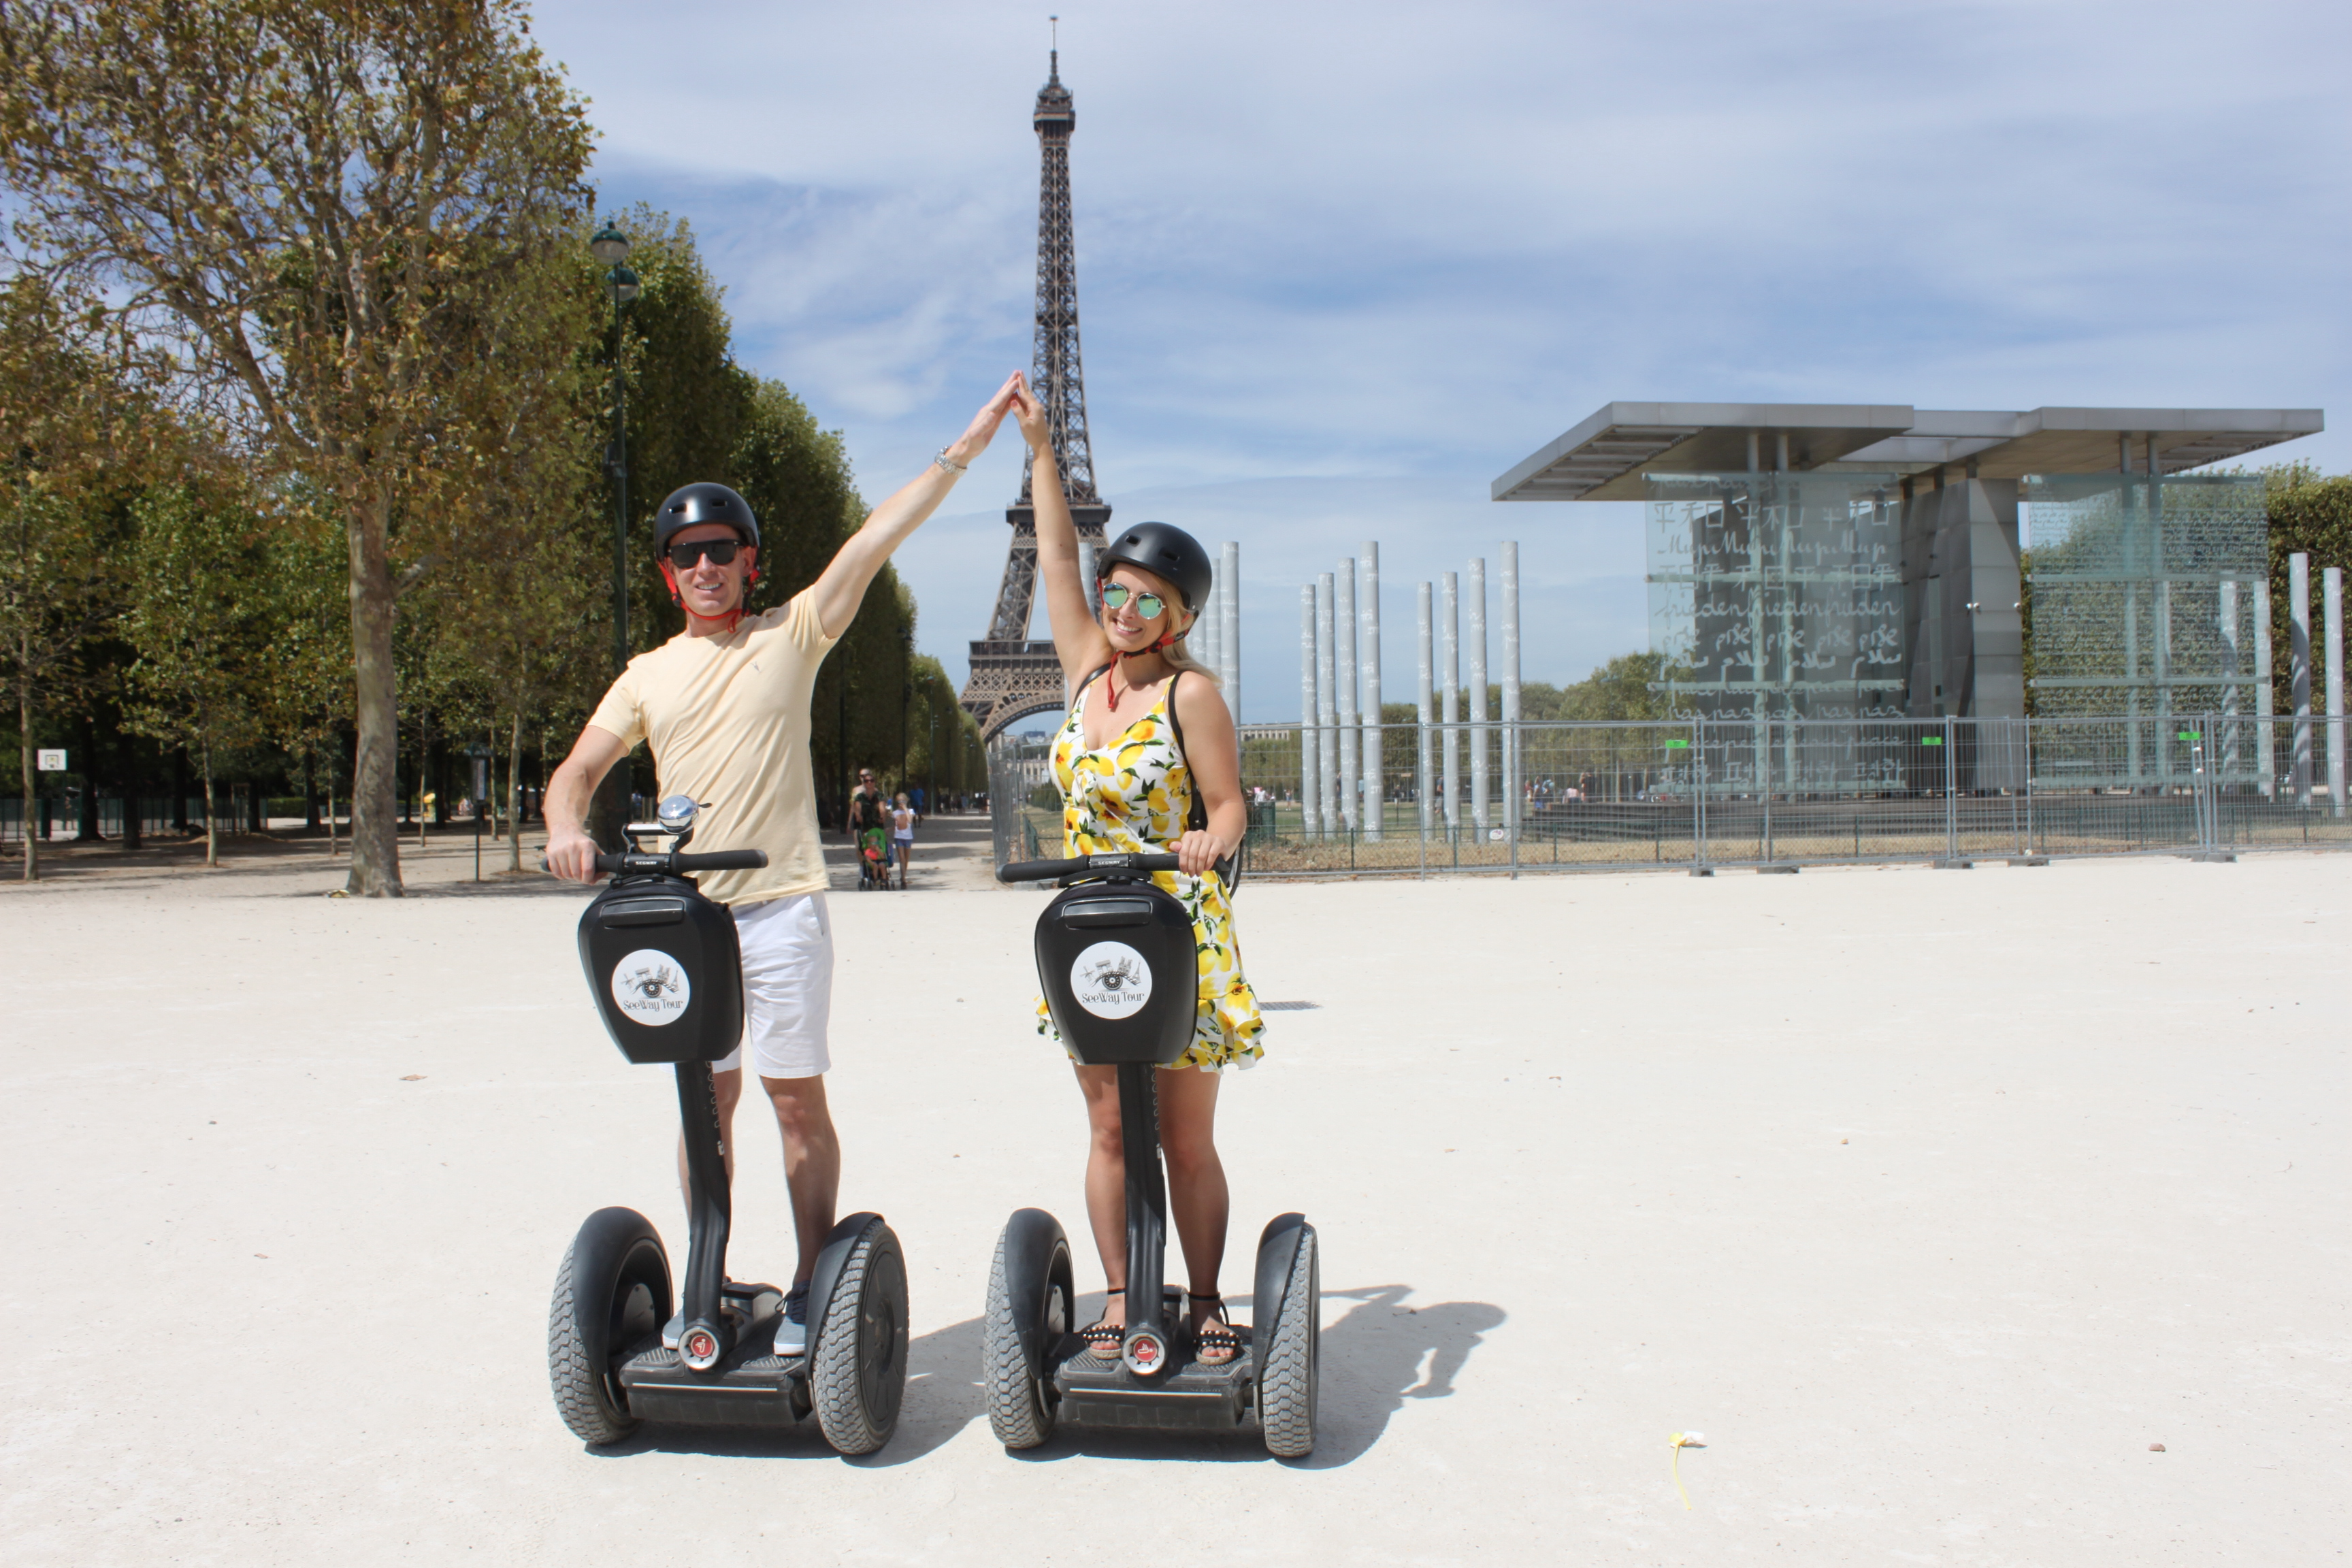 Why choose a Paris Segway tour with us?